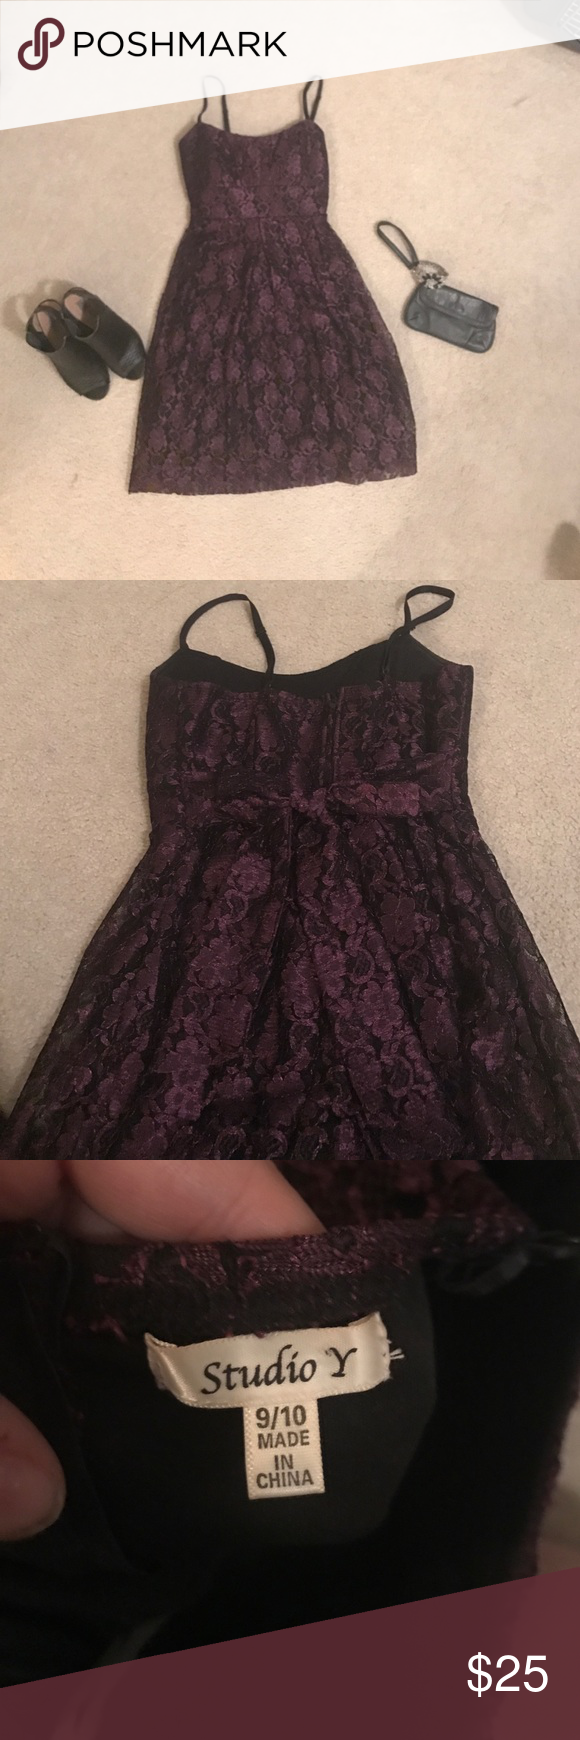 Fun, flirty Lacey dress! This lacy, flirty dress is perfect for date night and also for weddings. Rarely worn and in perfect condition. Don't let this one slip through your fingers! Listed as a 9/10 Studio Y Dresses